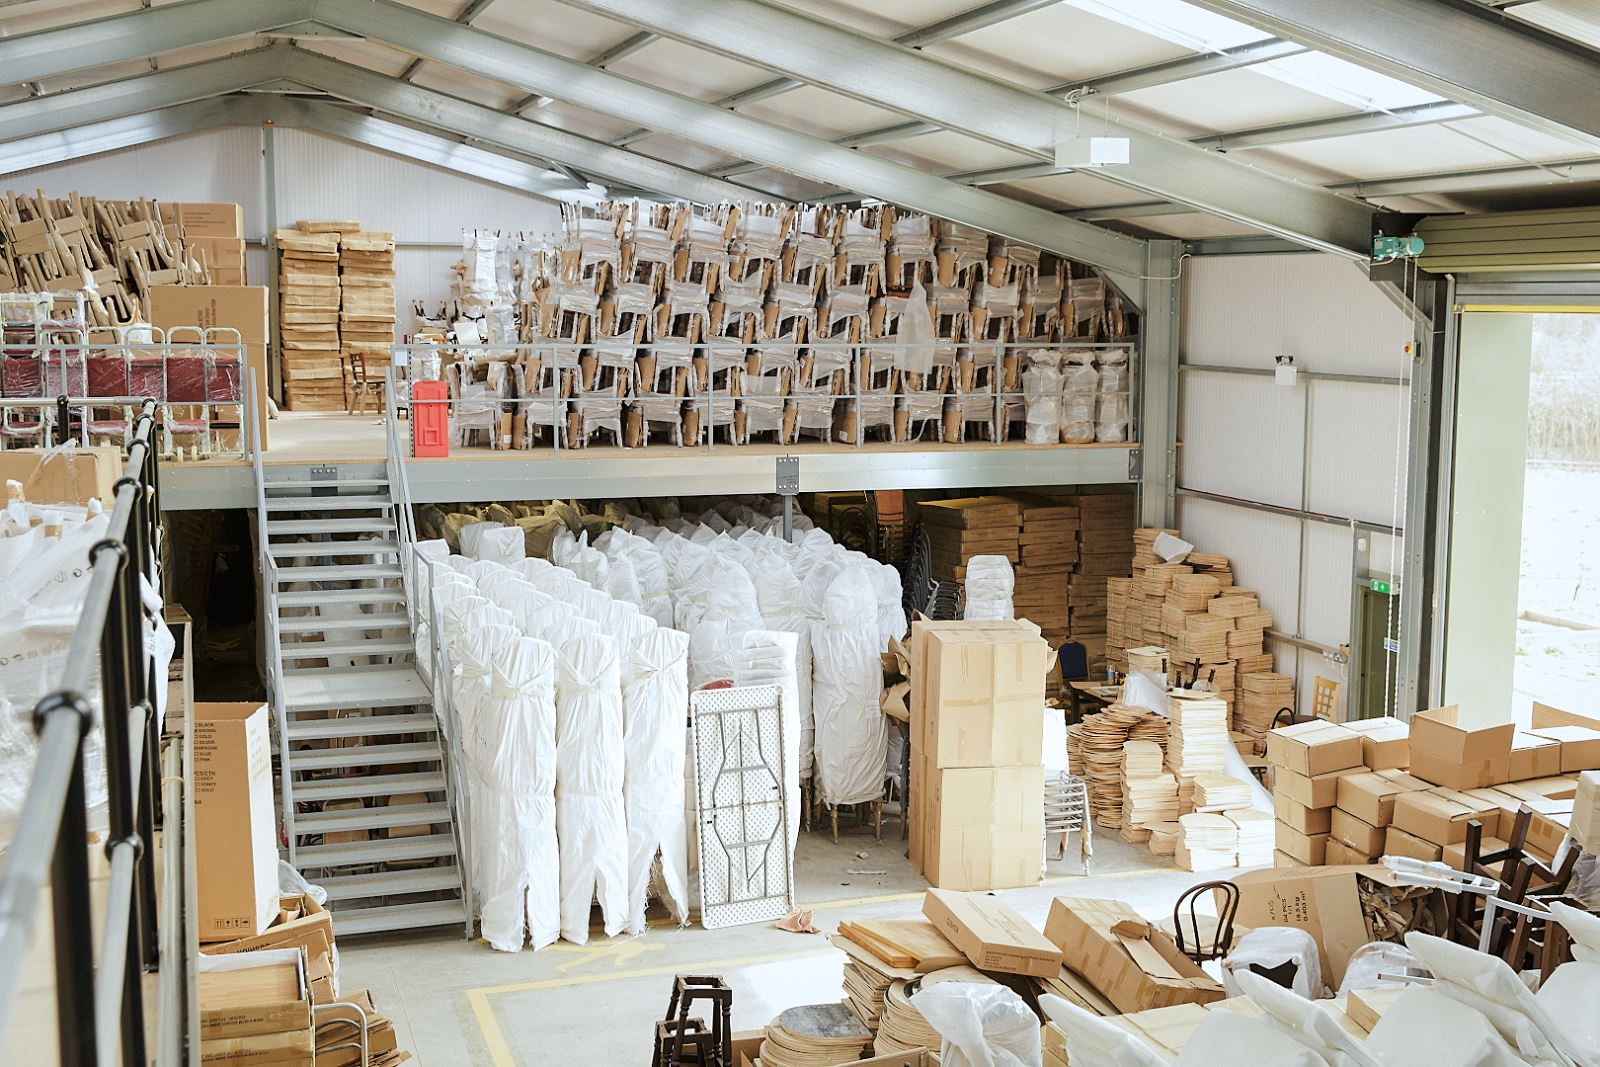 Furniture suppliers and warehousing facilities in Leicester - Trent Furniture